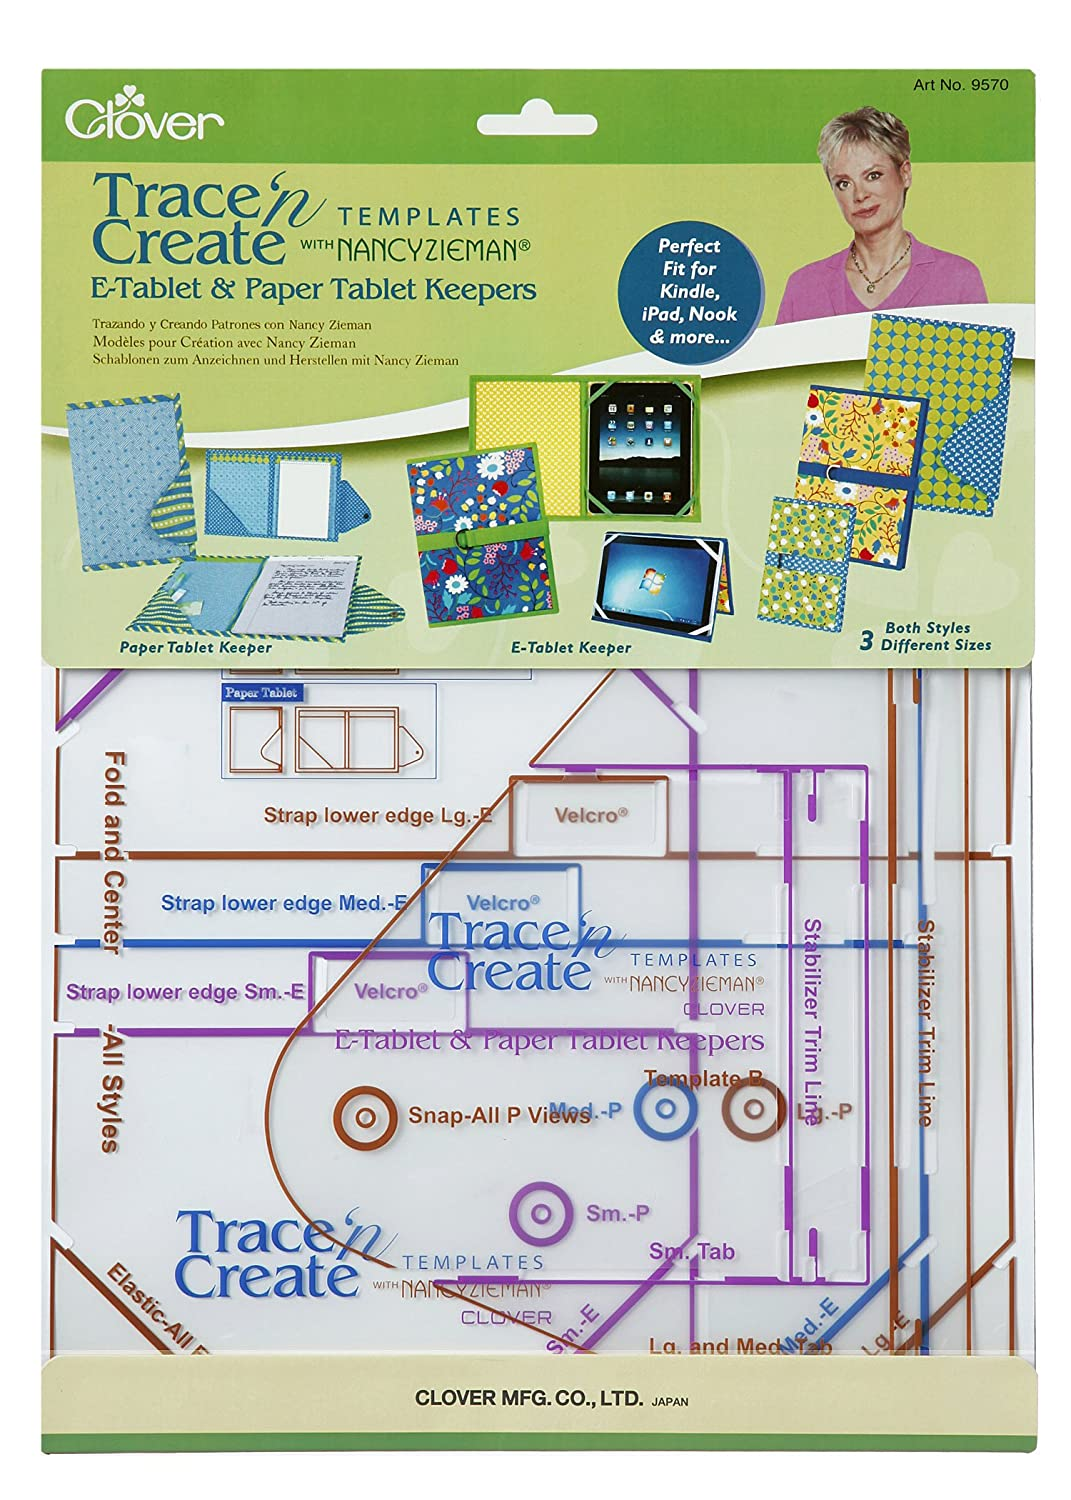 Clover Trace n Create E-Tablet &Paper Tablet Keepers Template with Nancy Zieman 9570